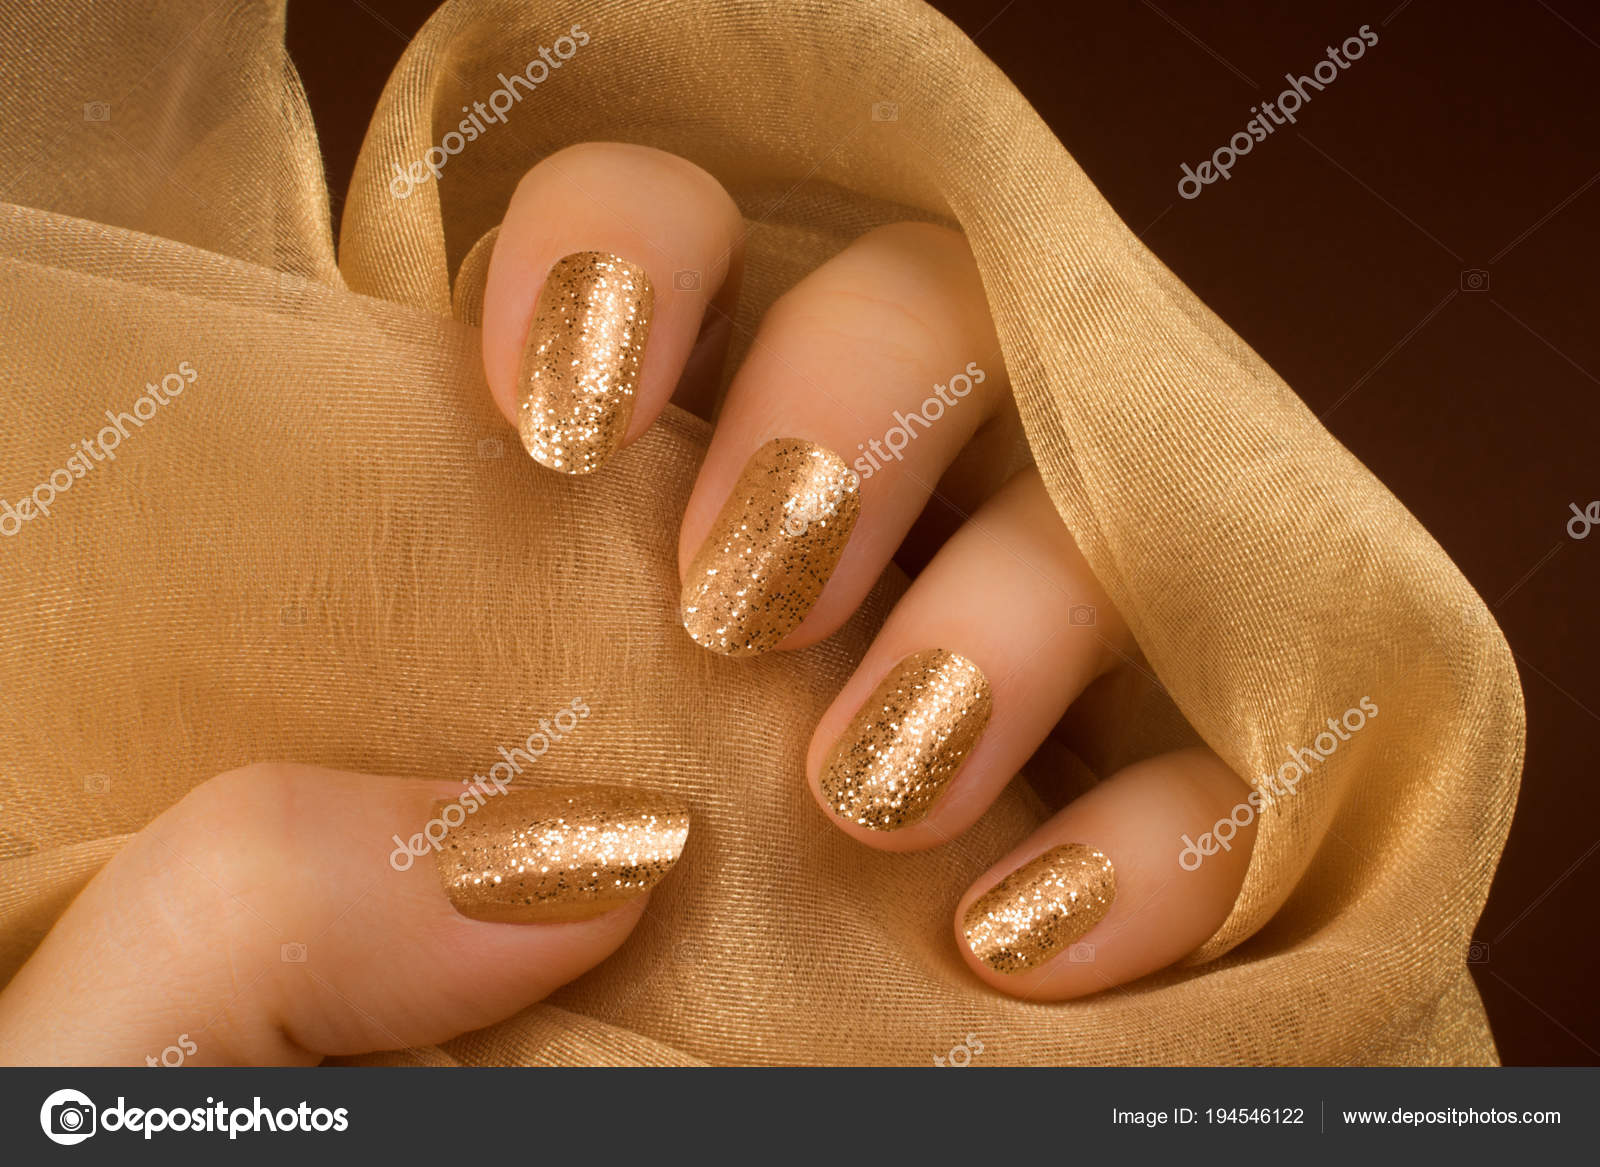 Glittered Golden Nails Manicure Stock Photo C Gyurma 194546122